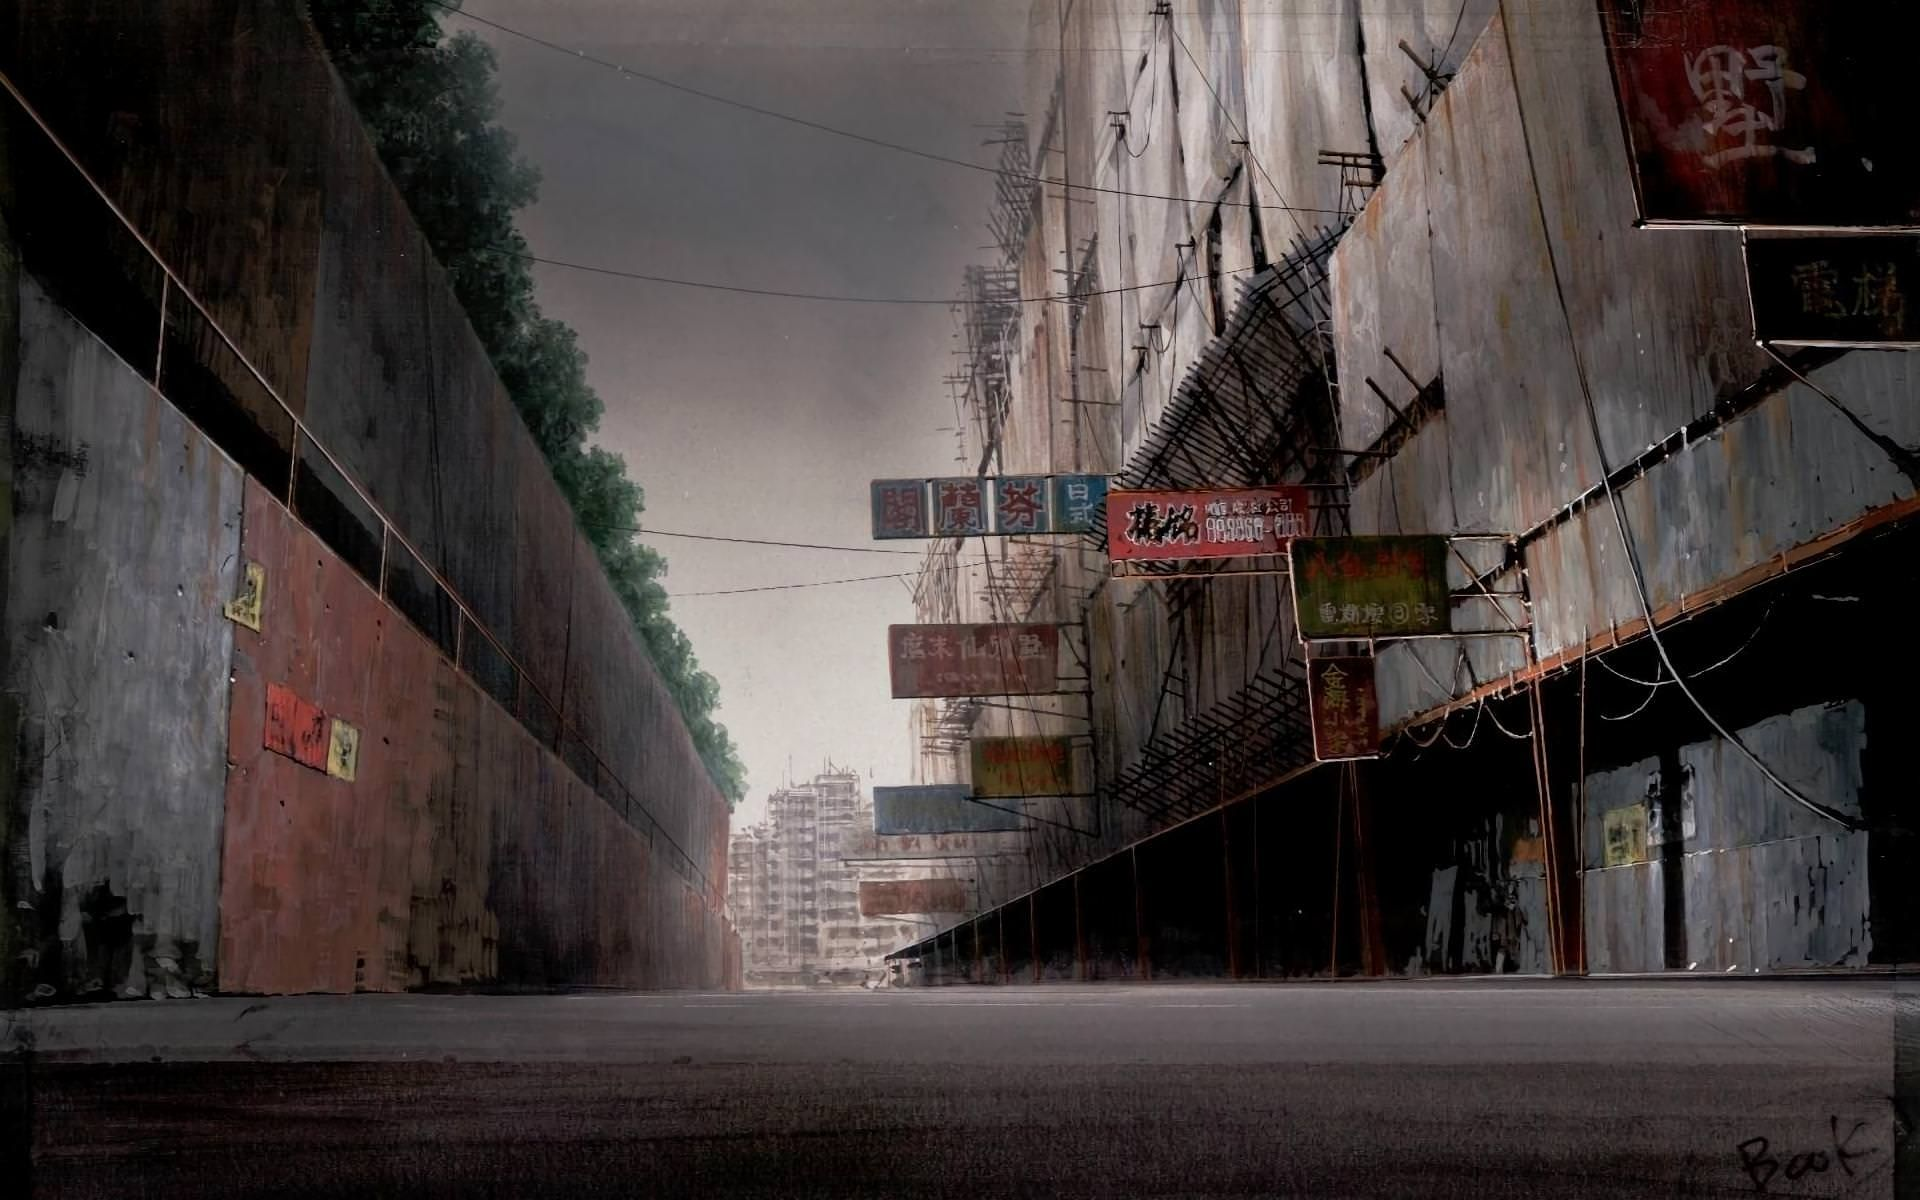 Forgotten Boundary 1920 1200 Ghost In The Shell Anime Scenery City Wallpaper